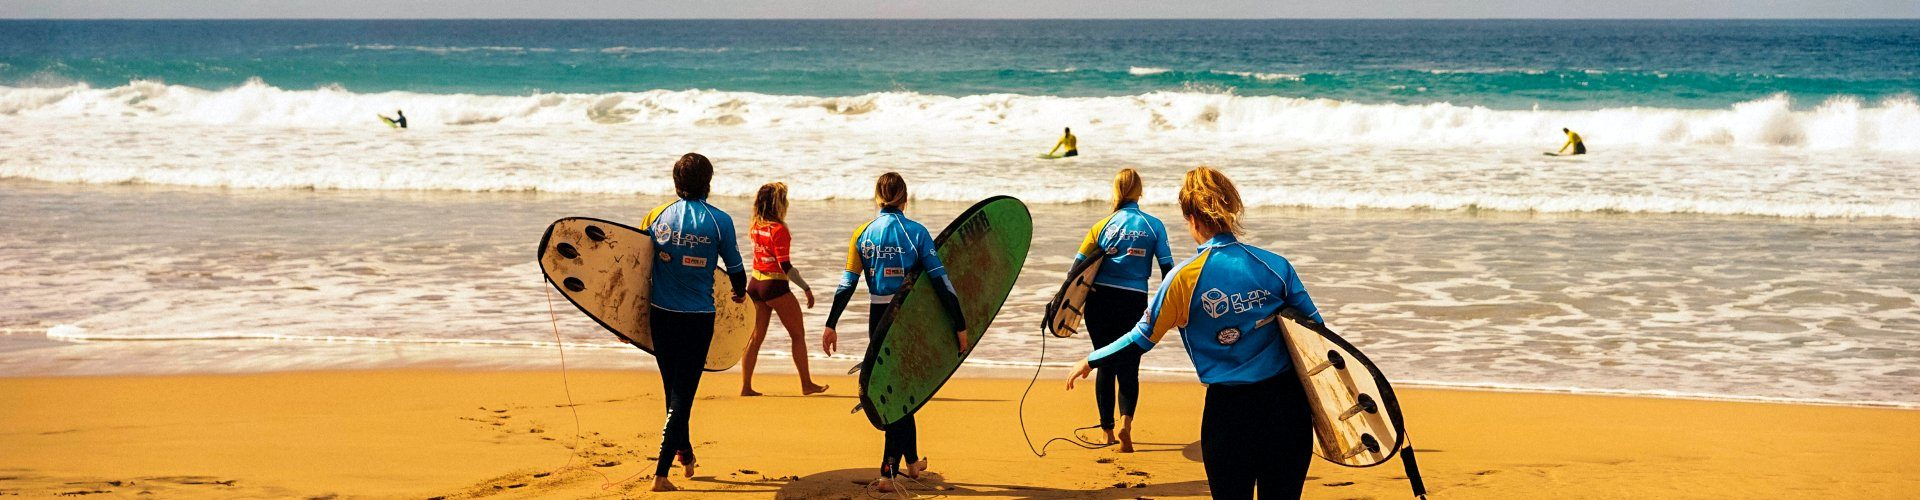 Surf school in Canary Islands